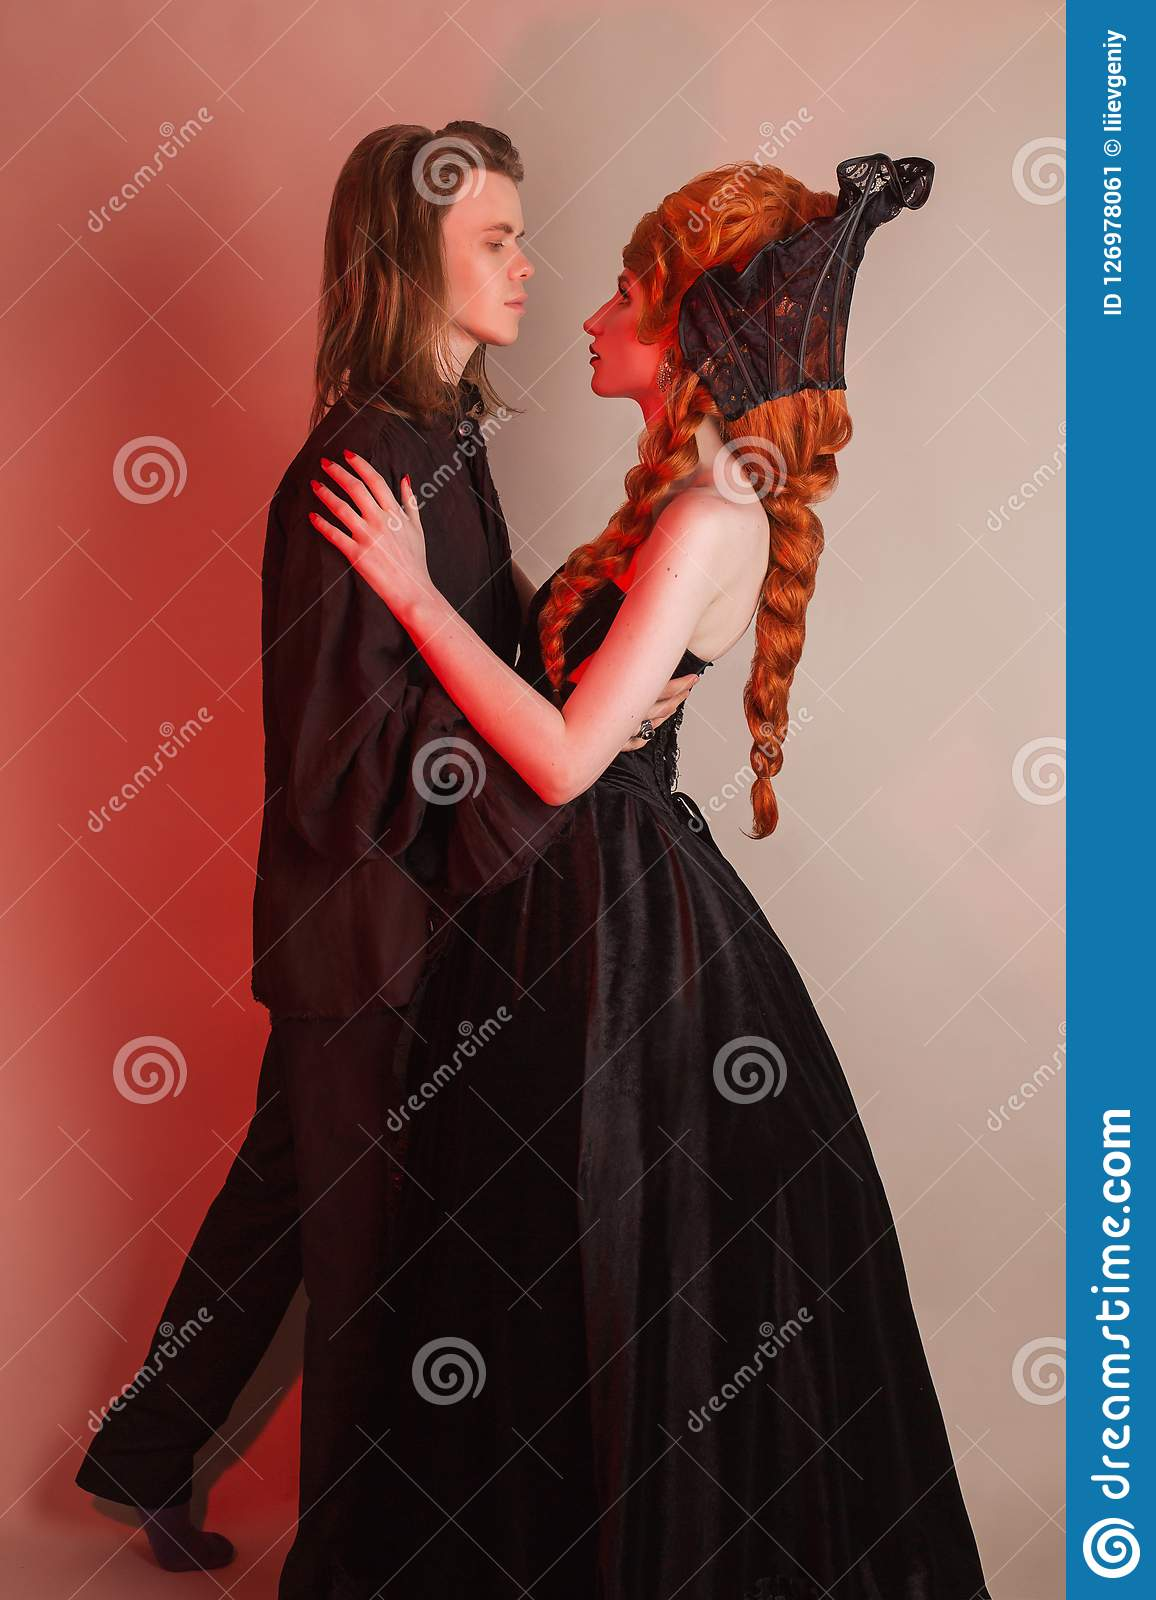 Tenderness in a relationship. Gothic couple dancing in halloween clothes. Redhead woman in dress. Vampire couple on dark backgroun